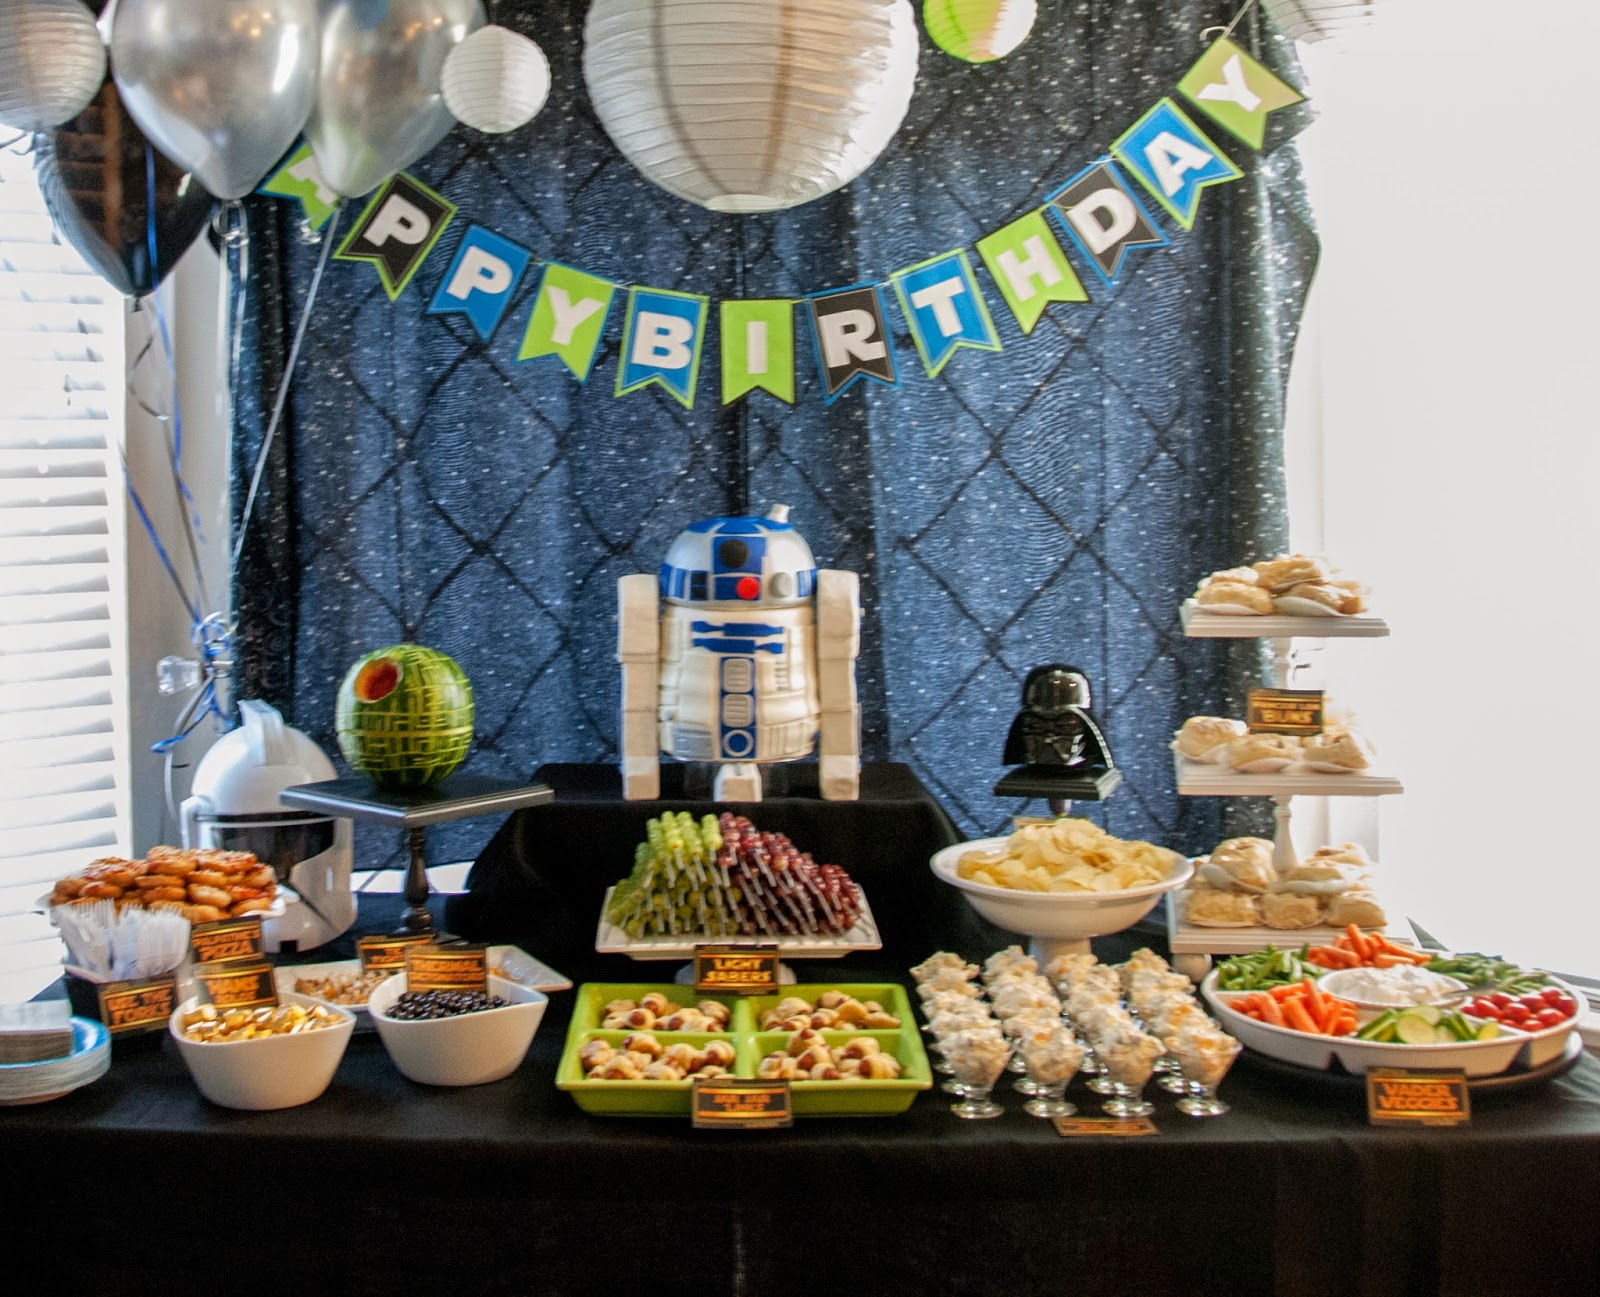 Author robin king blog star wars party with r2d2 cake for Adult birthday decoration ideas